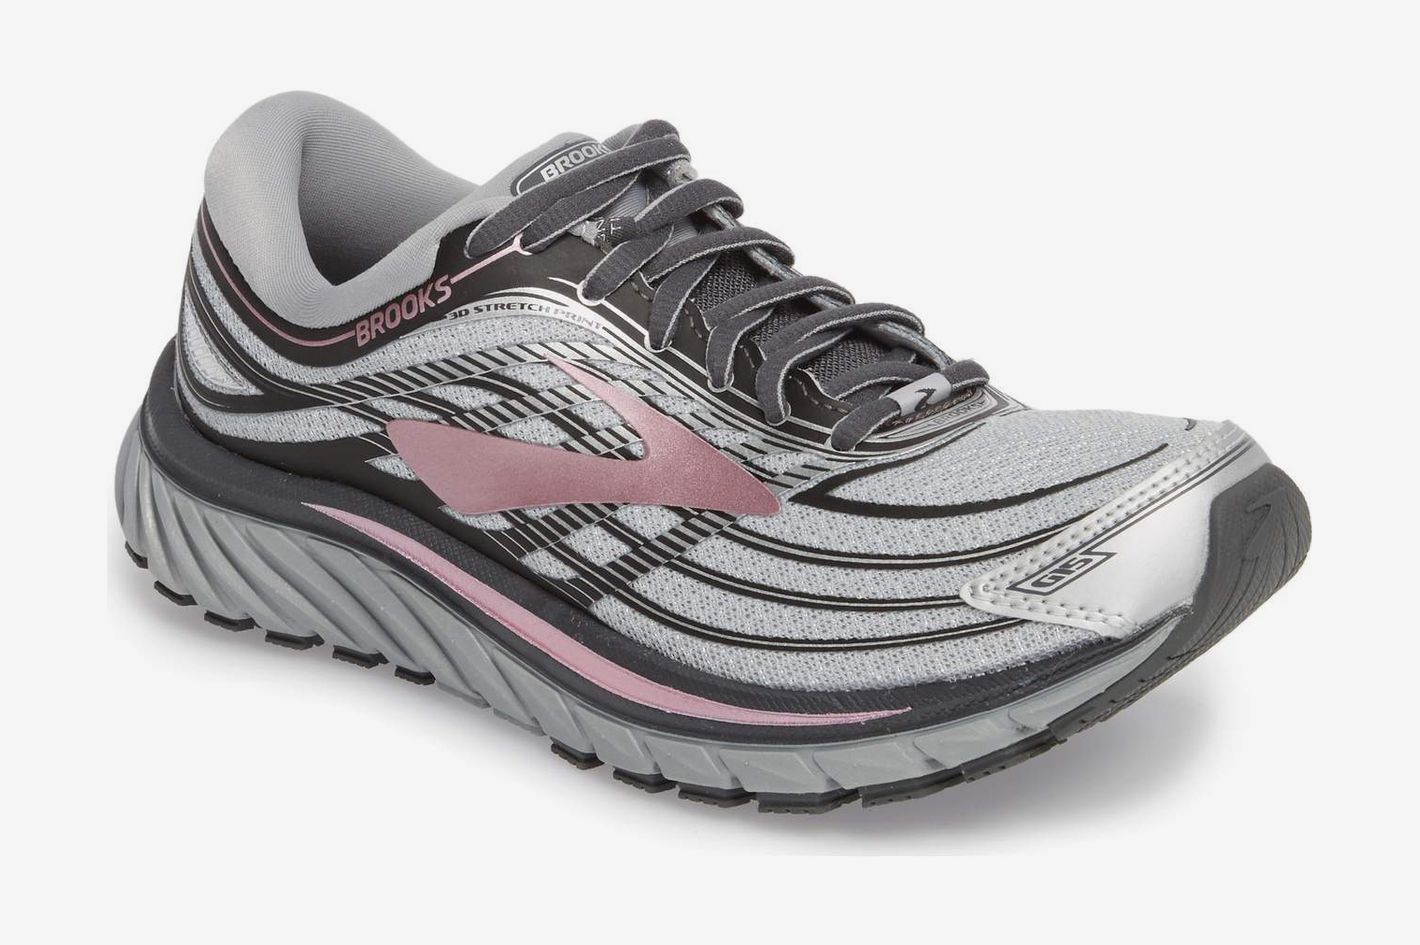 The best running shoes for marathon training. Brooks Glycerin 15 Running  Shoe e4ac92a61